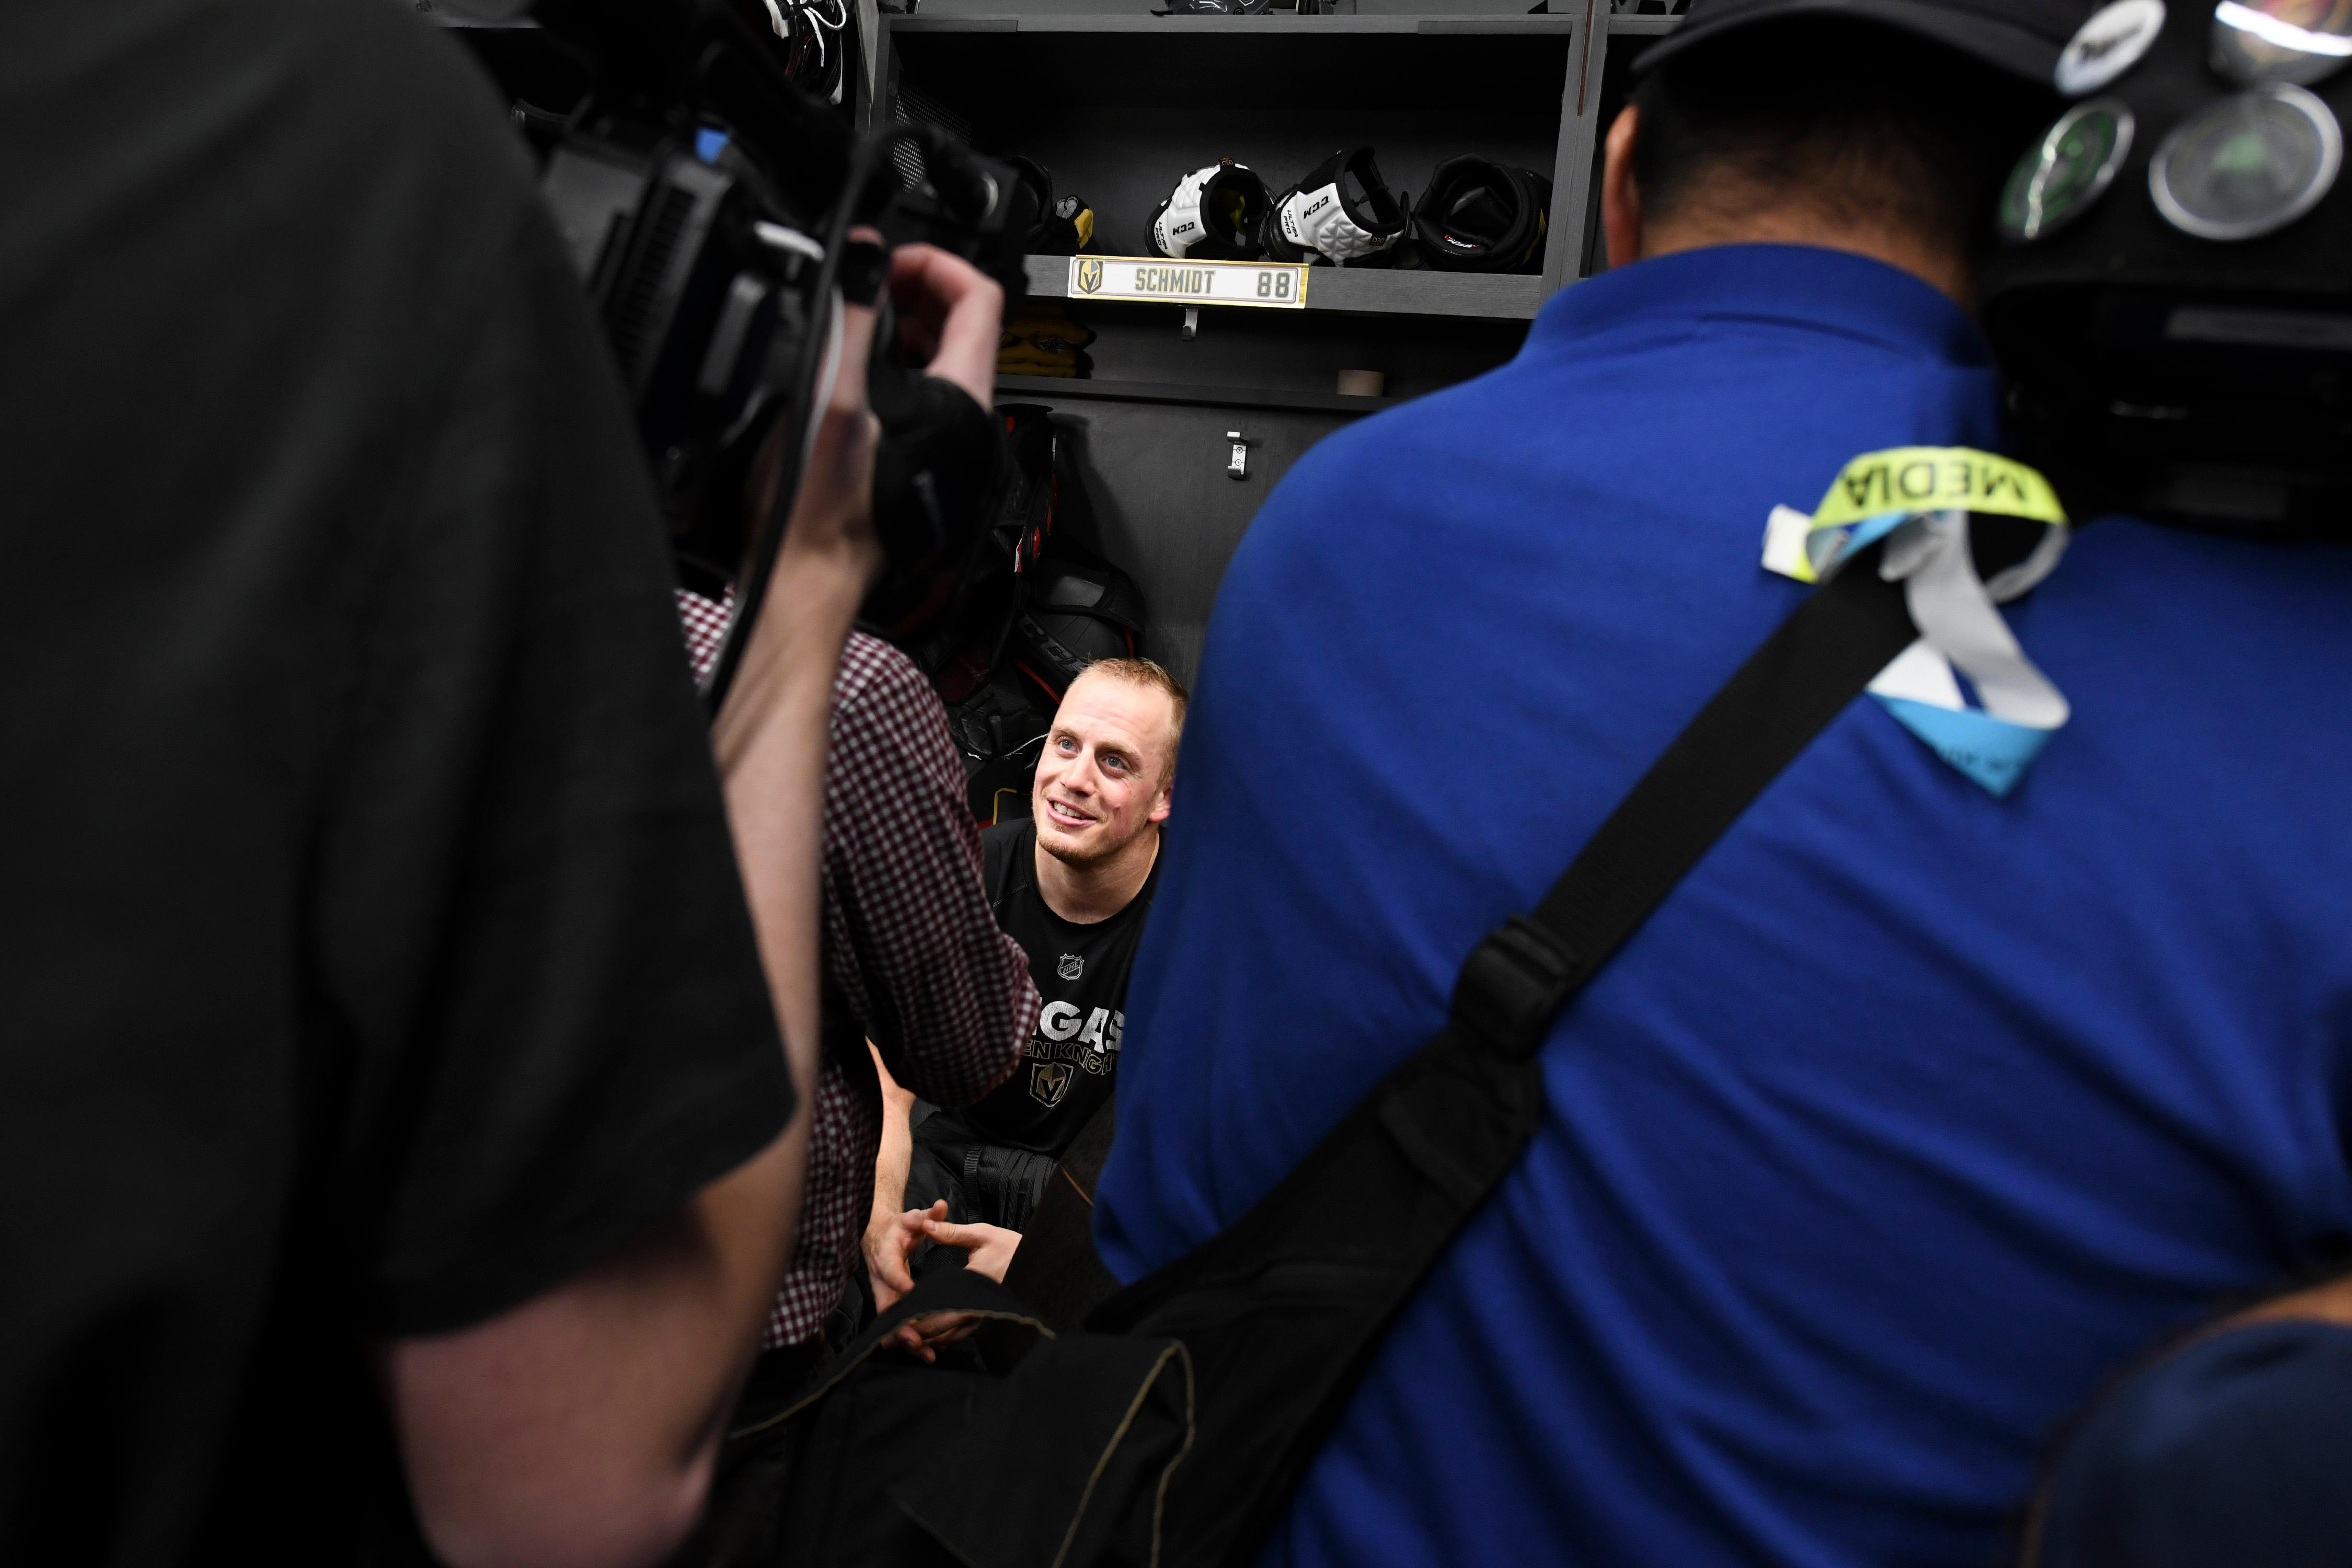 Media interview Vegas Golden Knights defenseman Nate Schmidt after the Vegas Golden Knights practice Friday, April 20, 2018, at City National Arena in Las Vegas. McNabb scored the winning goal against the Los Angeles Kings, his former team, to sweep the Kings in their first round playoff series. CREDIT: Sam Morris/Las Vegas News Bureau